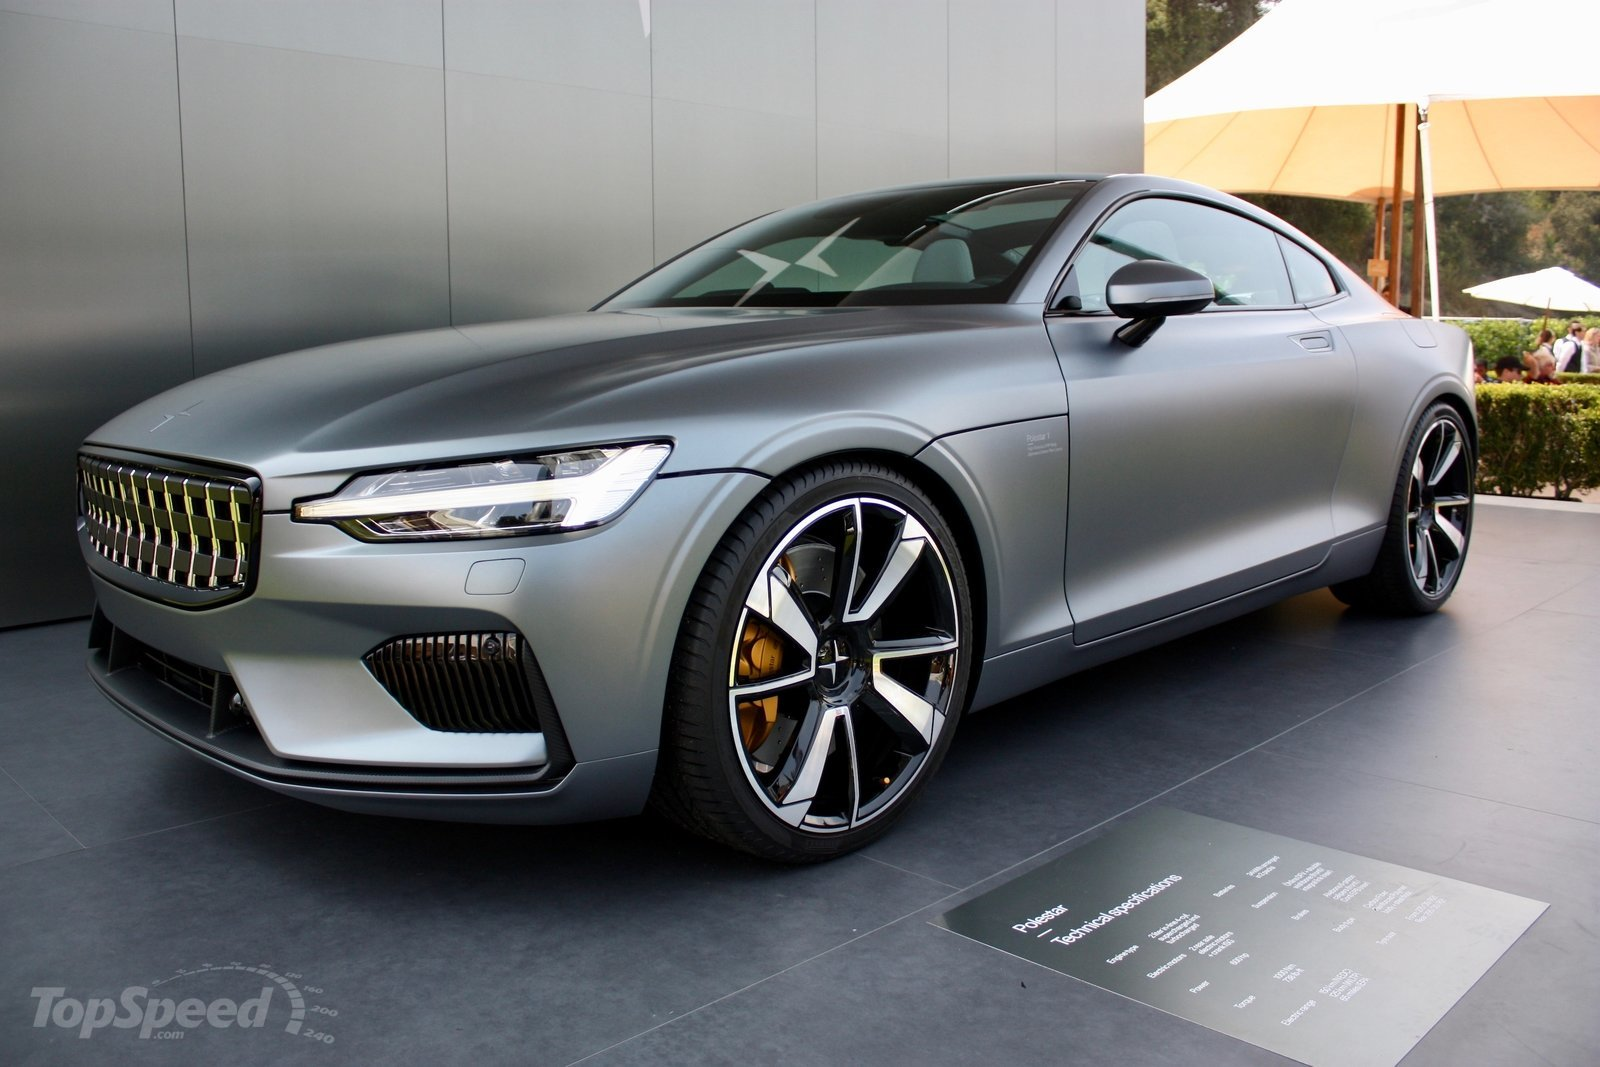 12 Best Luxury Midsize Cars For The Money In 2019: Polestar 1: Latest News, Reviews, Specifications, Prices